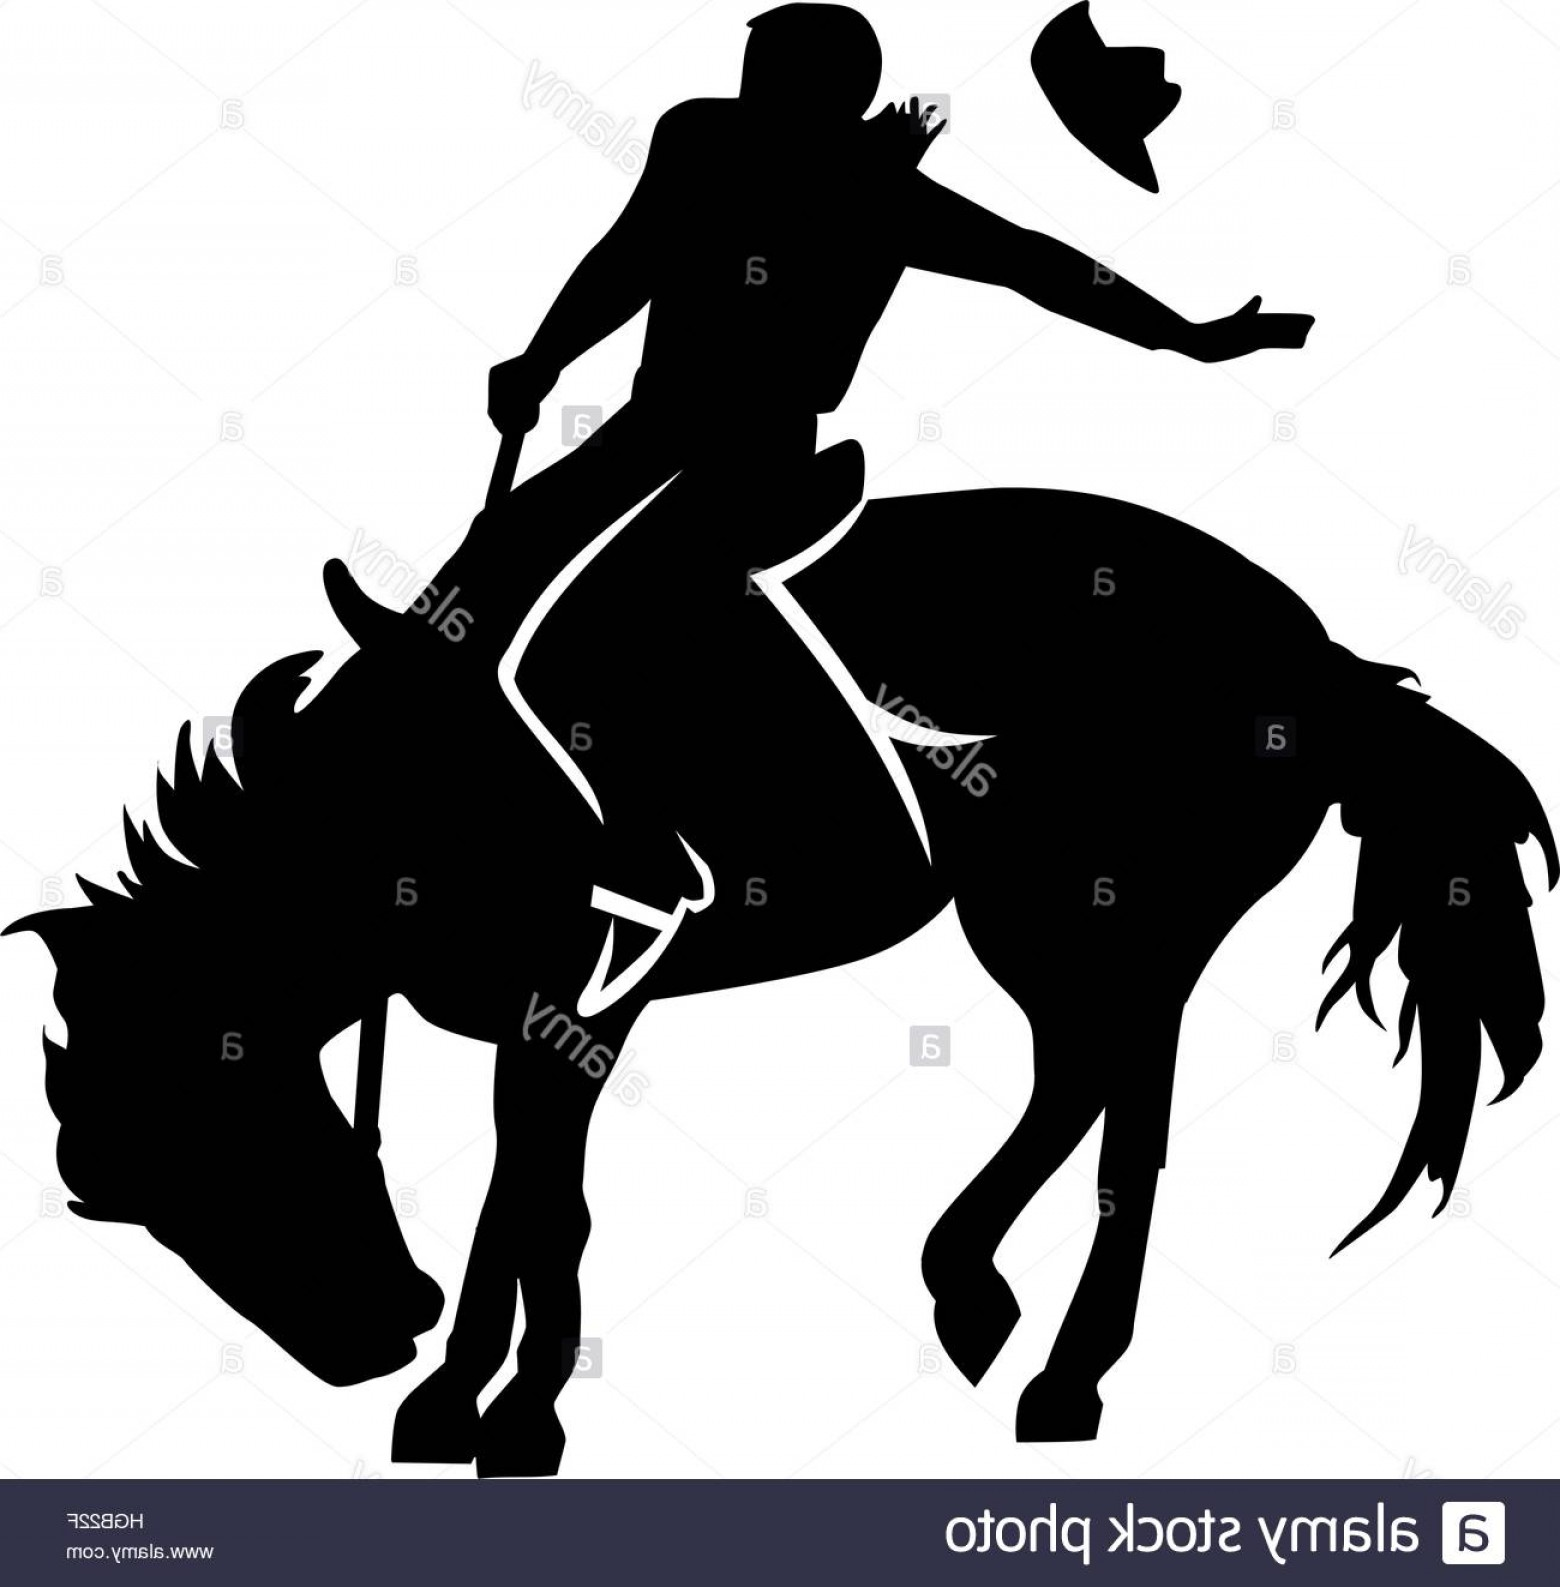 Barrel Racer Vector: Stock Photo Rodeo Riding Silhouette